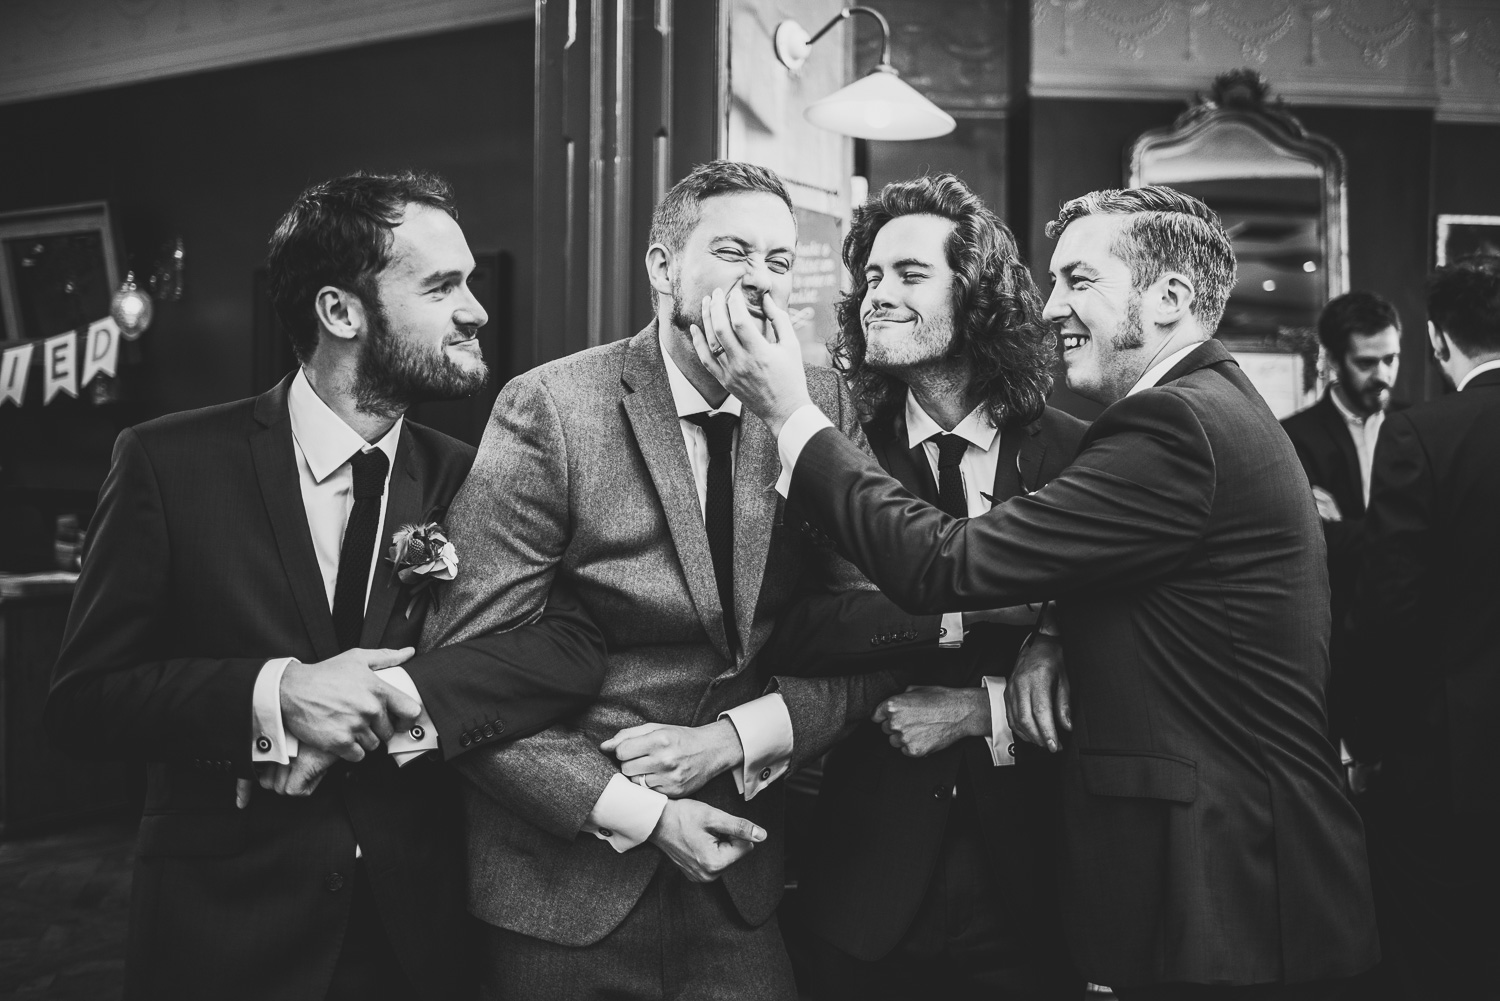 west-london-pub-wedding-39.jpg